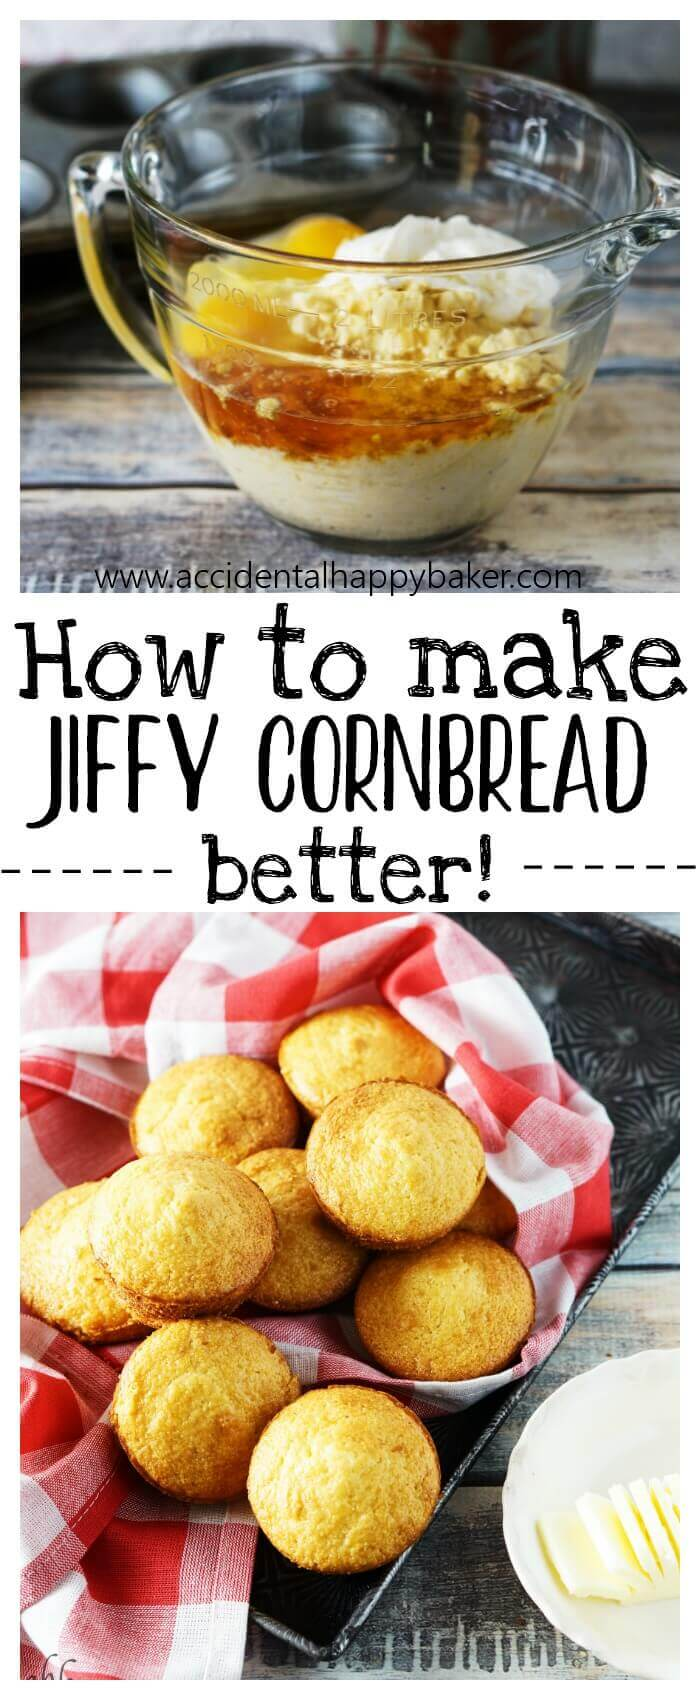 How to make Jiffy cornbread better!